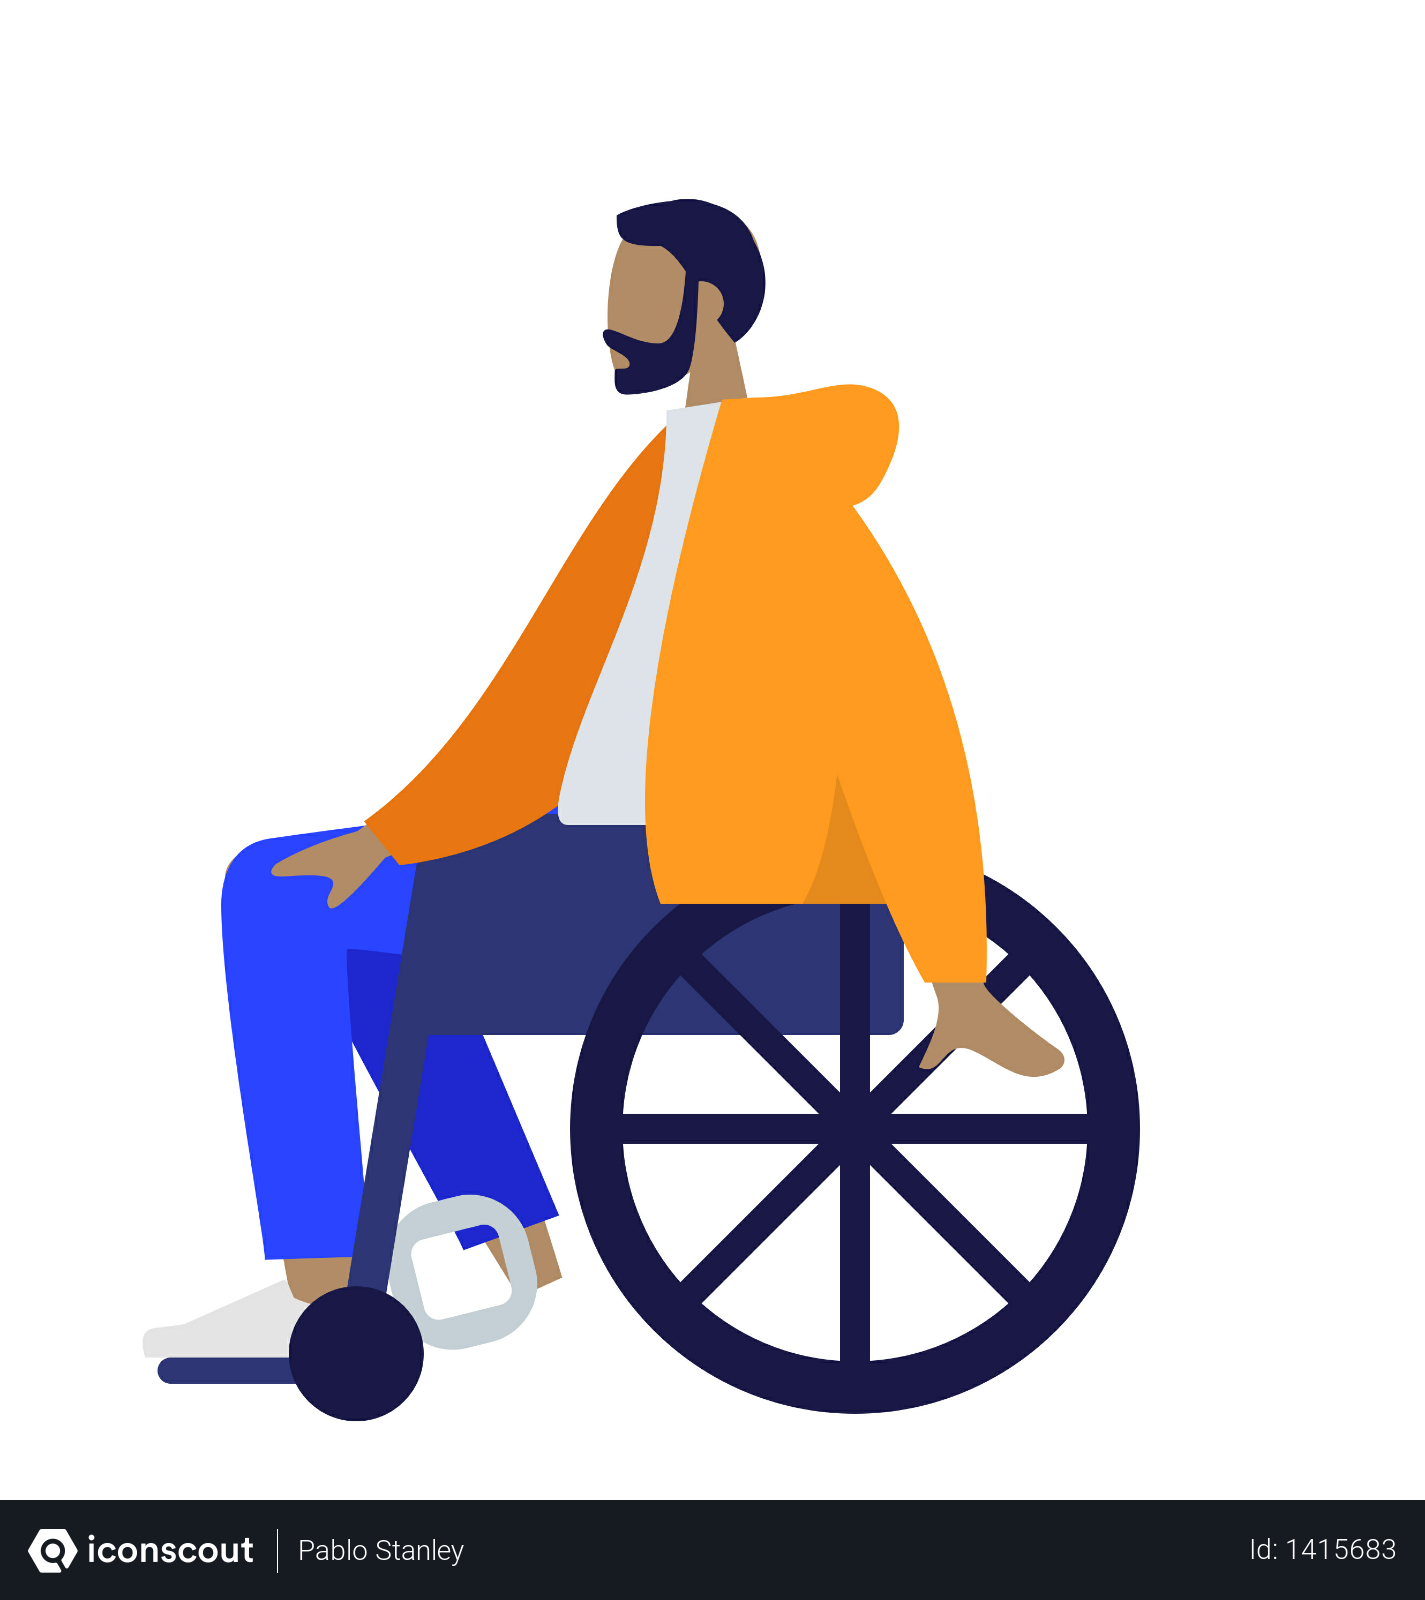 Free Beard Man Sitting On Wheelchair Illustration Download In Png Vector Format Illustration Man Illustration People Illustration